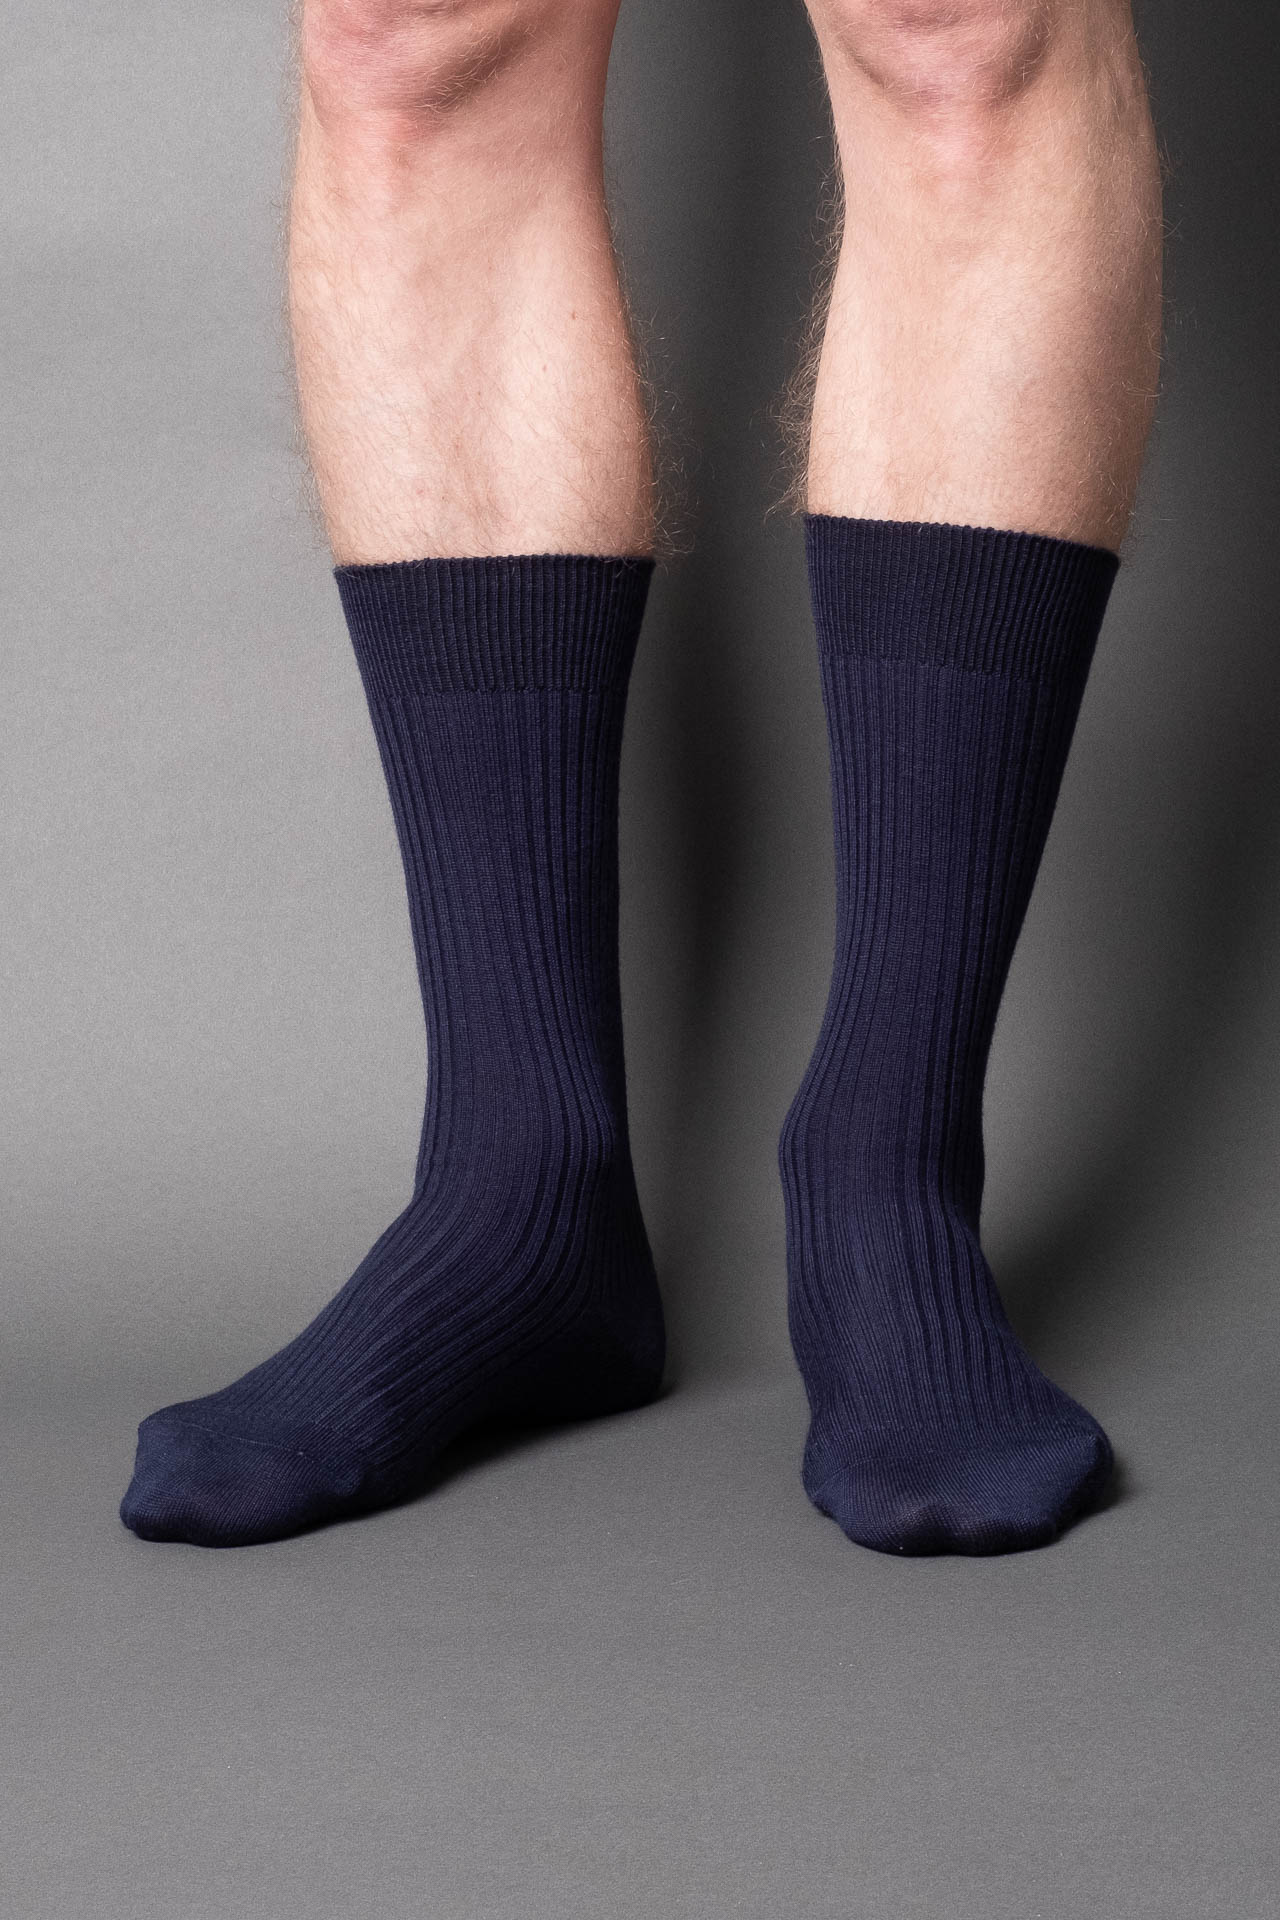 once a day-wool-dress-socks-colors-made-in-japan-premium-blue